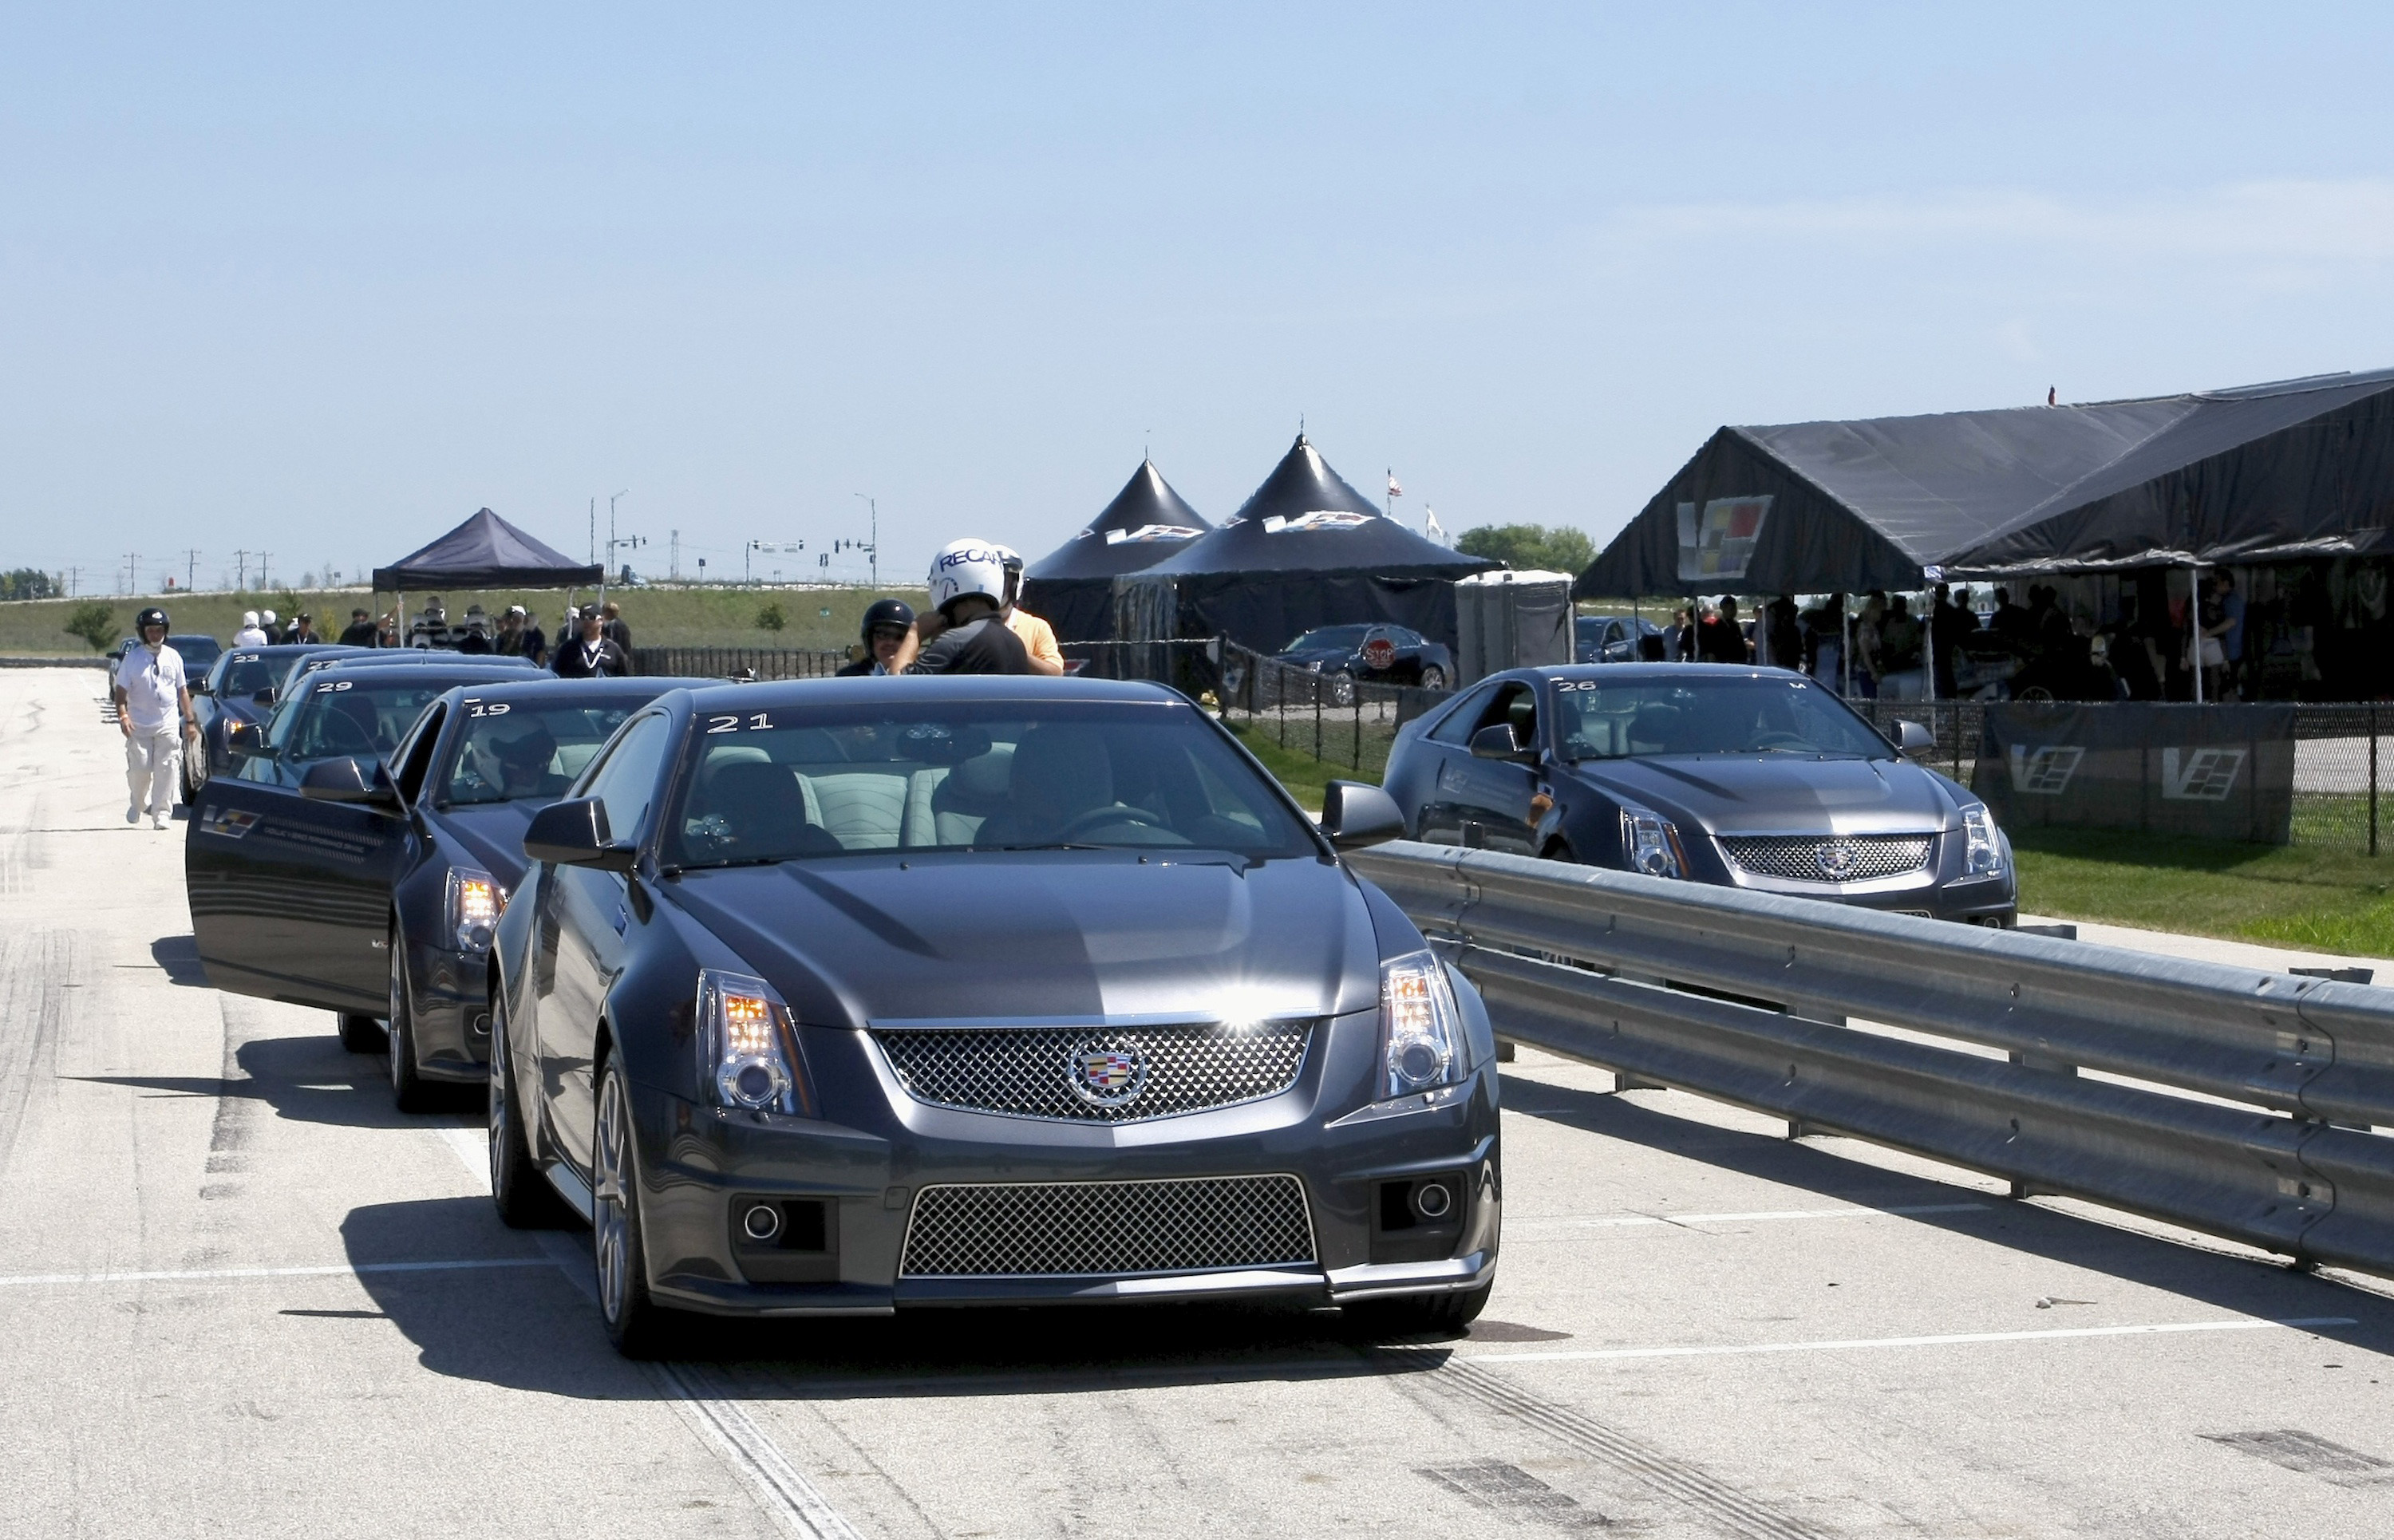 GM Cadillac Meets New Customers Where They Live and Play